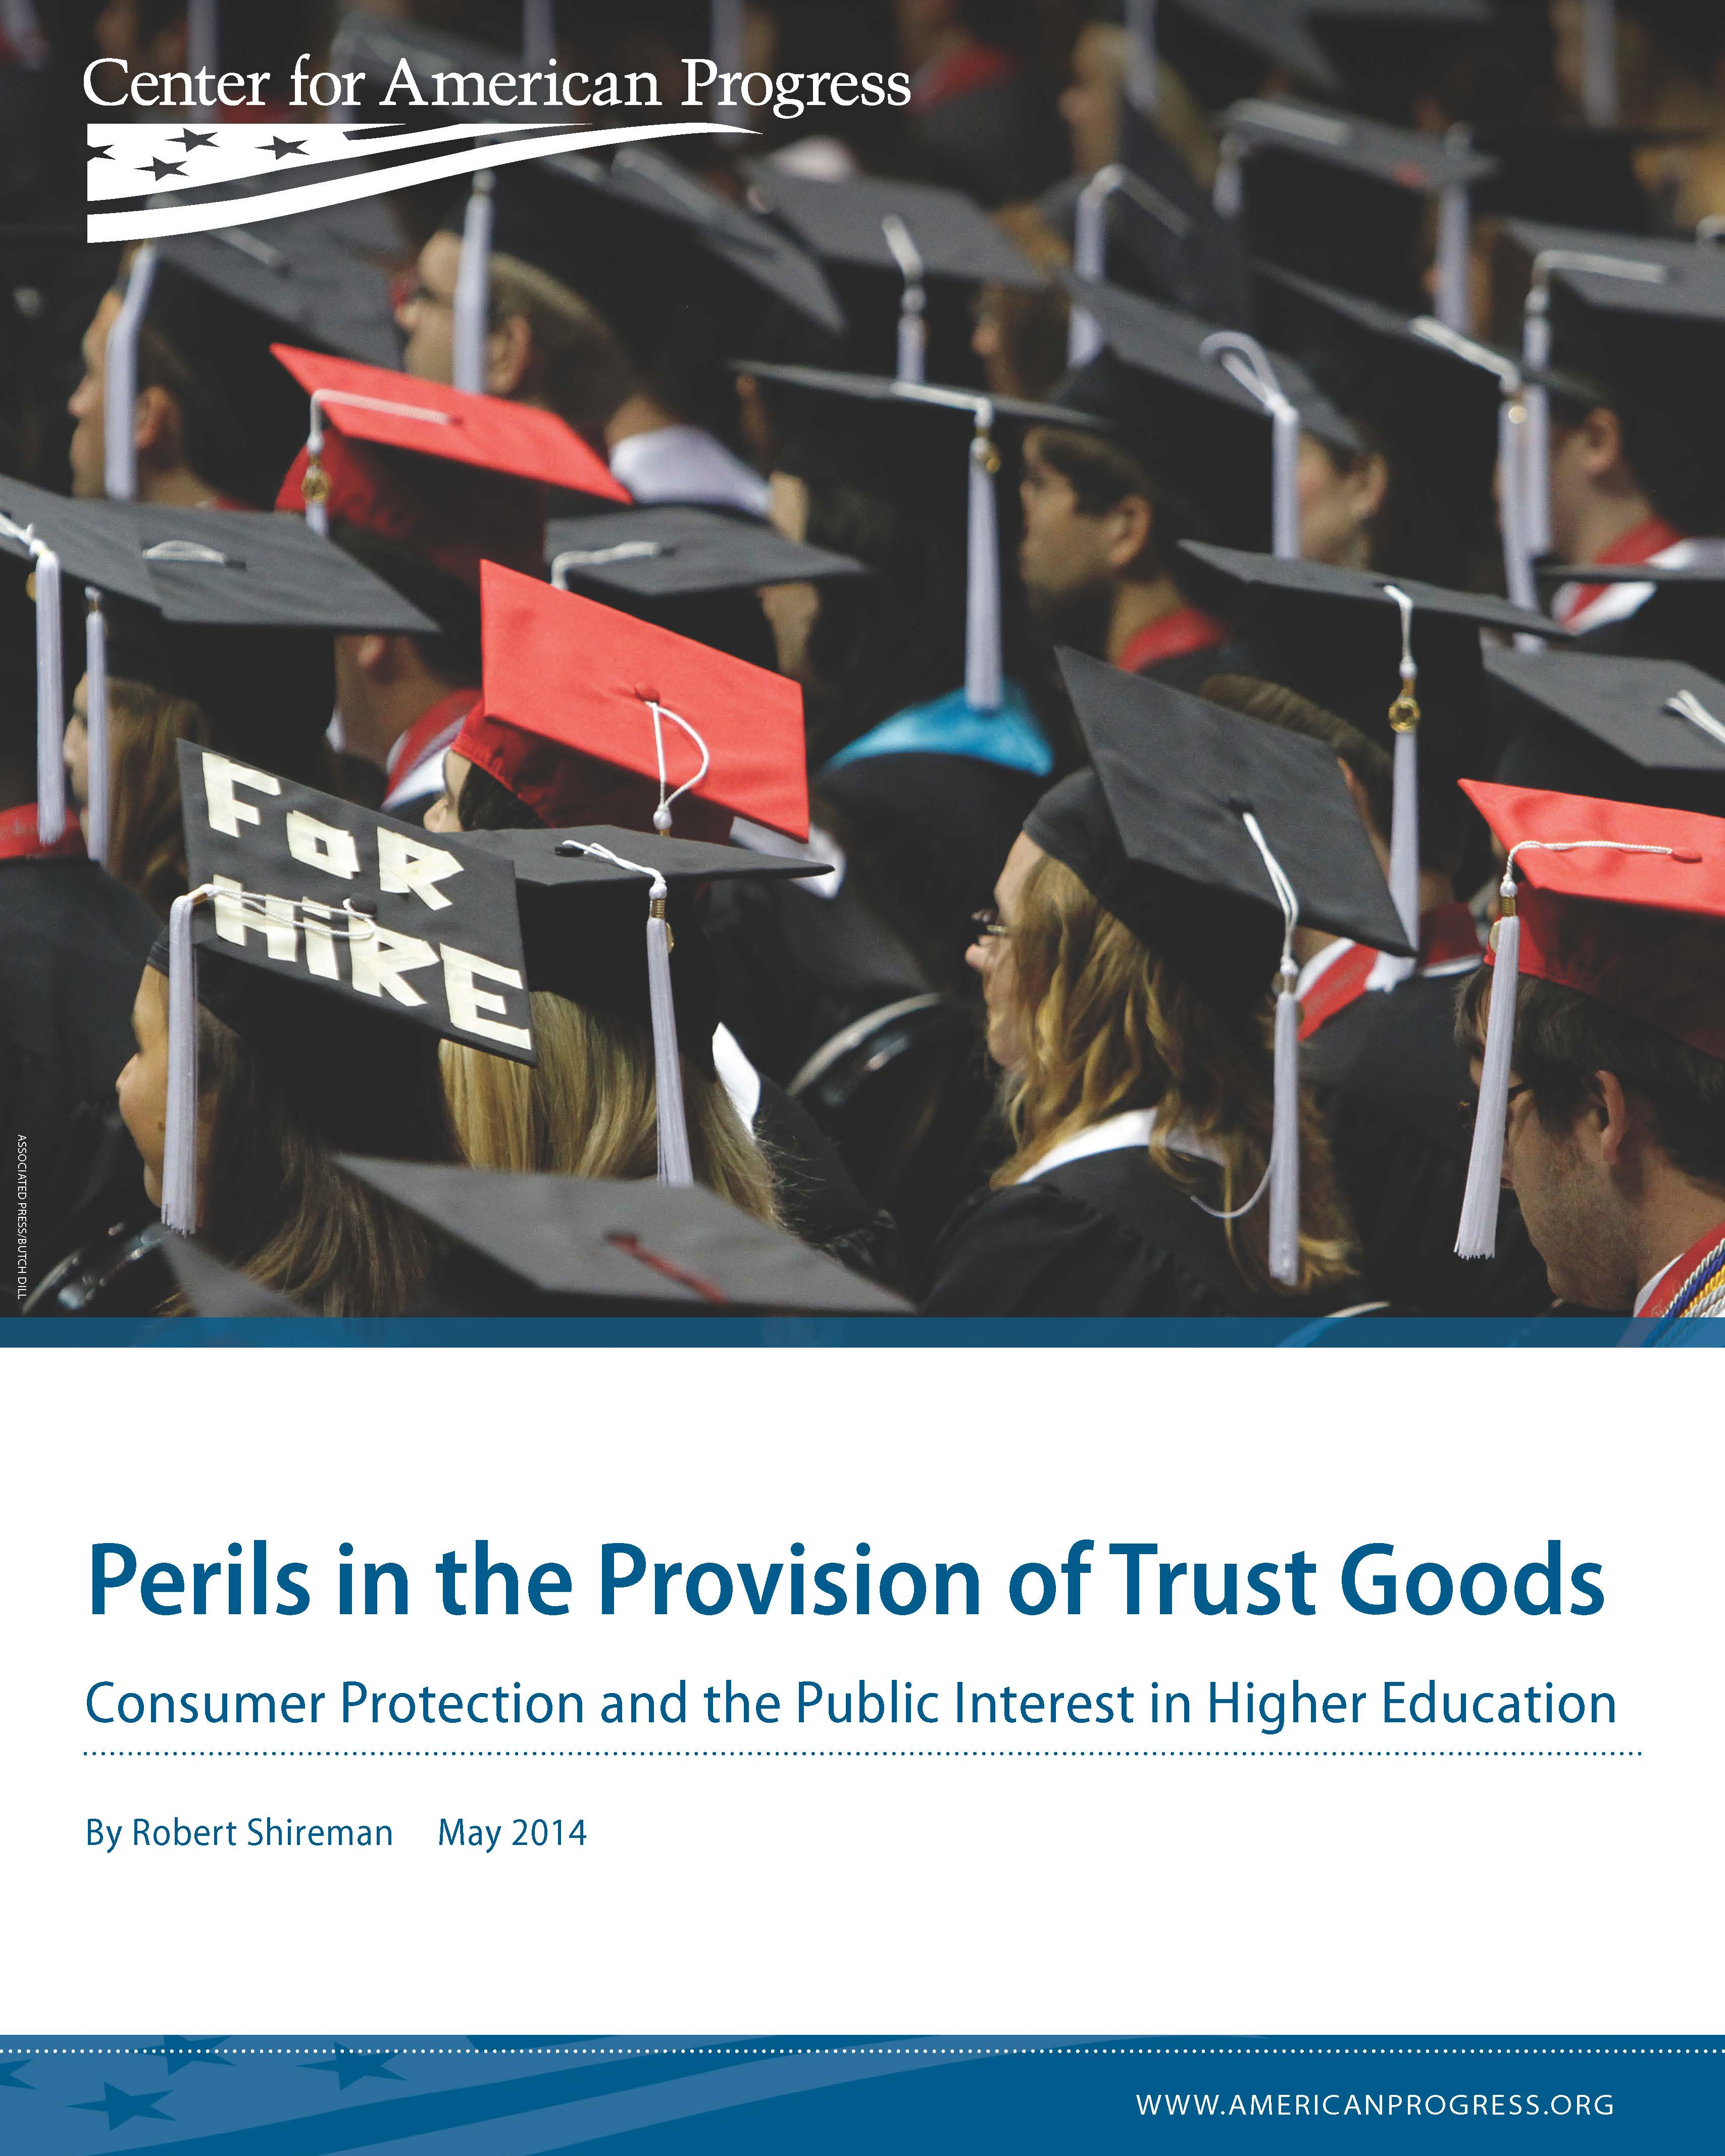 Perils in the Provision of Trust Goods